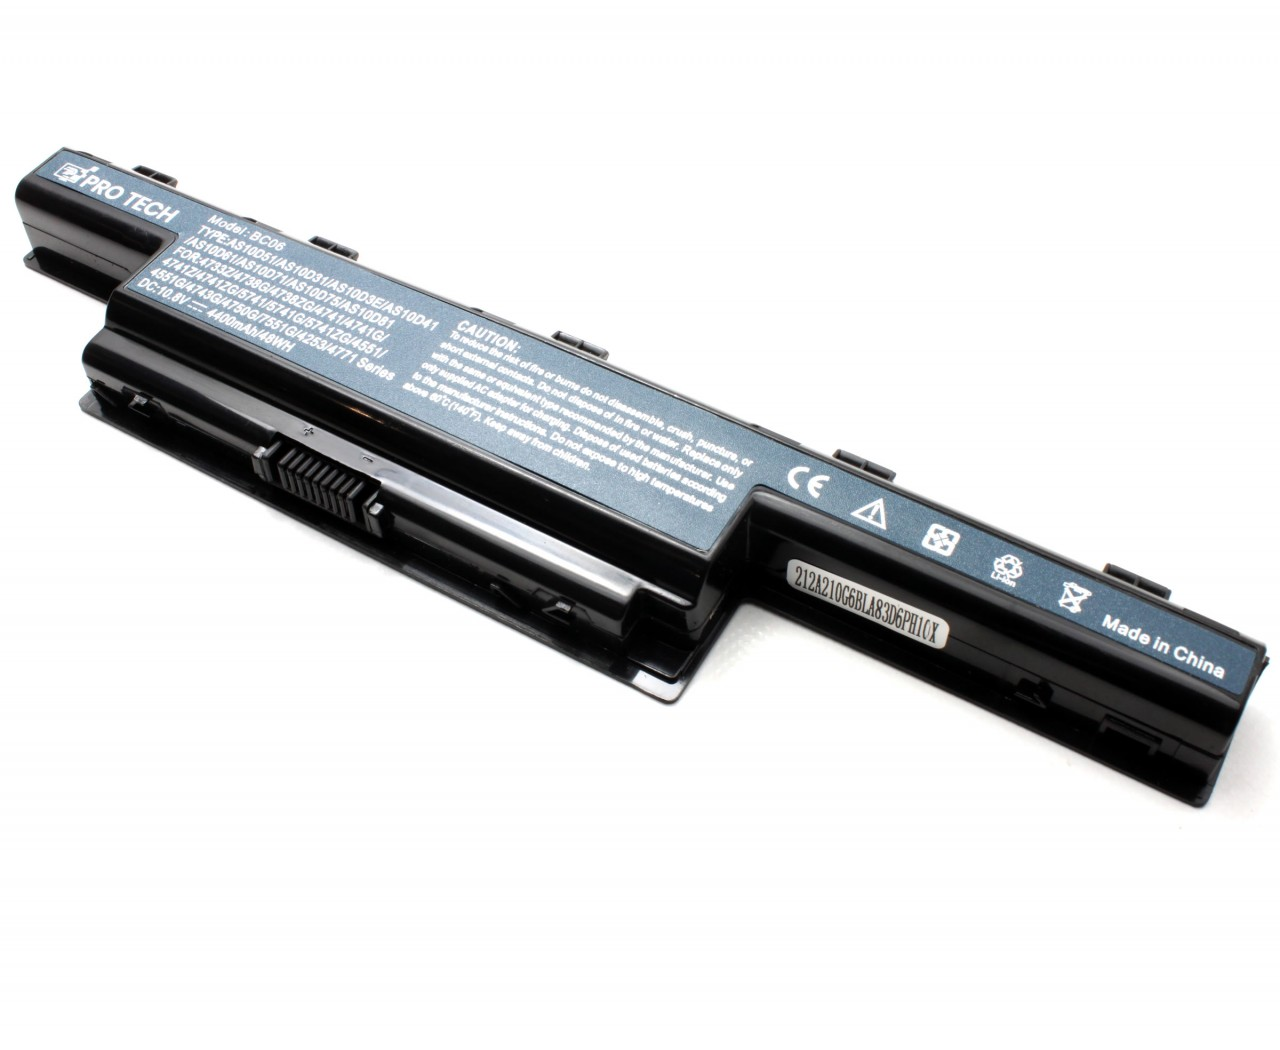 Baterie Packard Bell EasyNote TM85 6 celule imagine powerlaptop.ro 2021